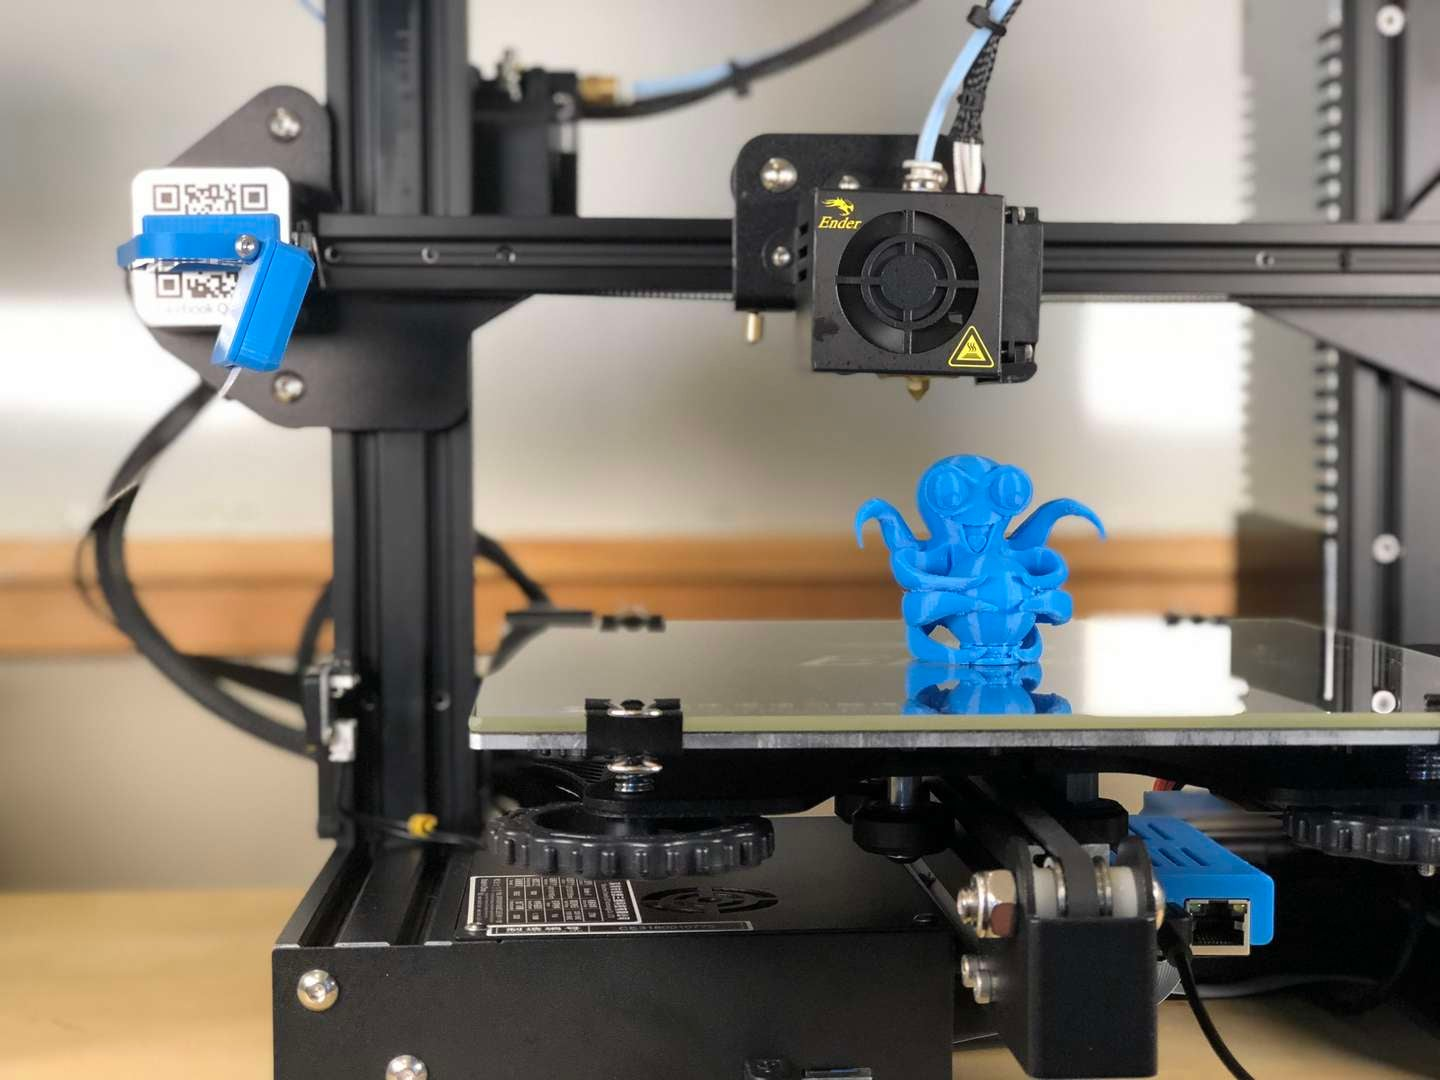 Octoprint disconnects